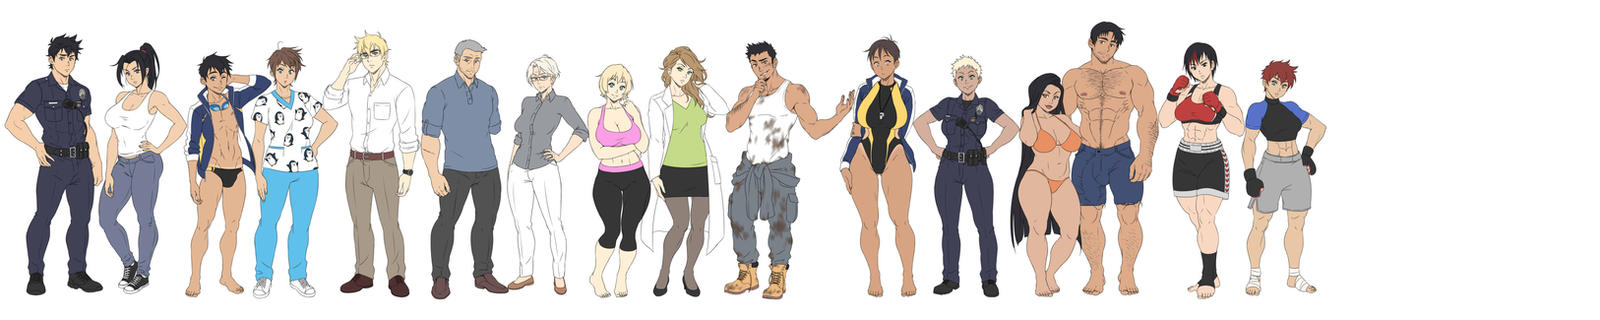 ICNG: The cast so far by SNEEDHAM507